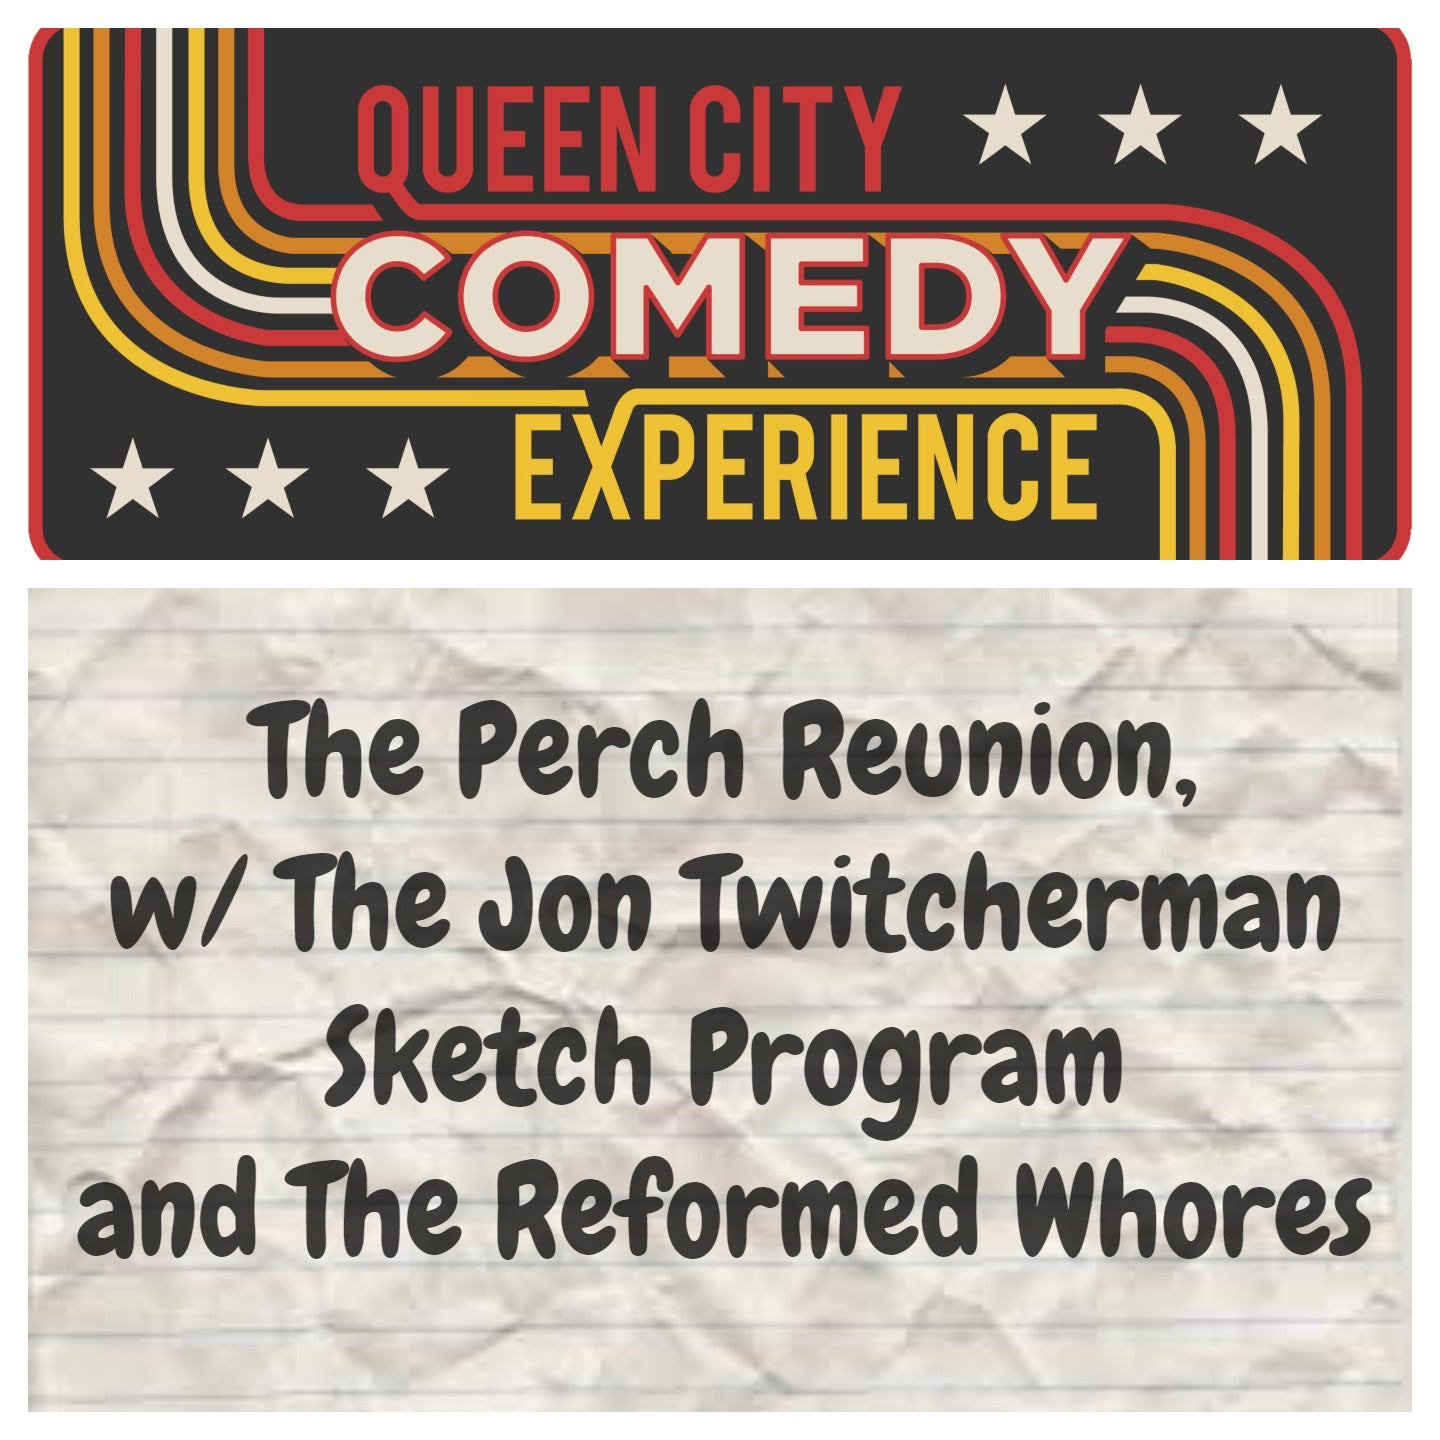 The Perch Reunion w/ Reformed Whores and The Jon Twitcherman Sketch Program